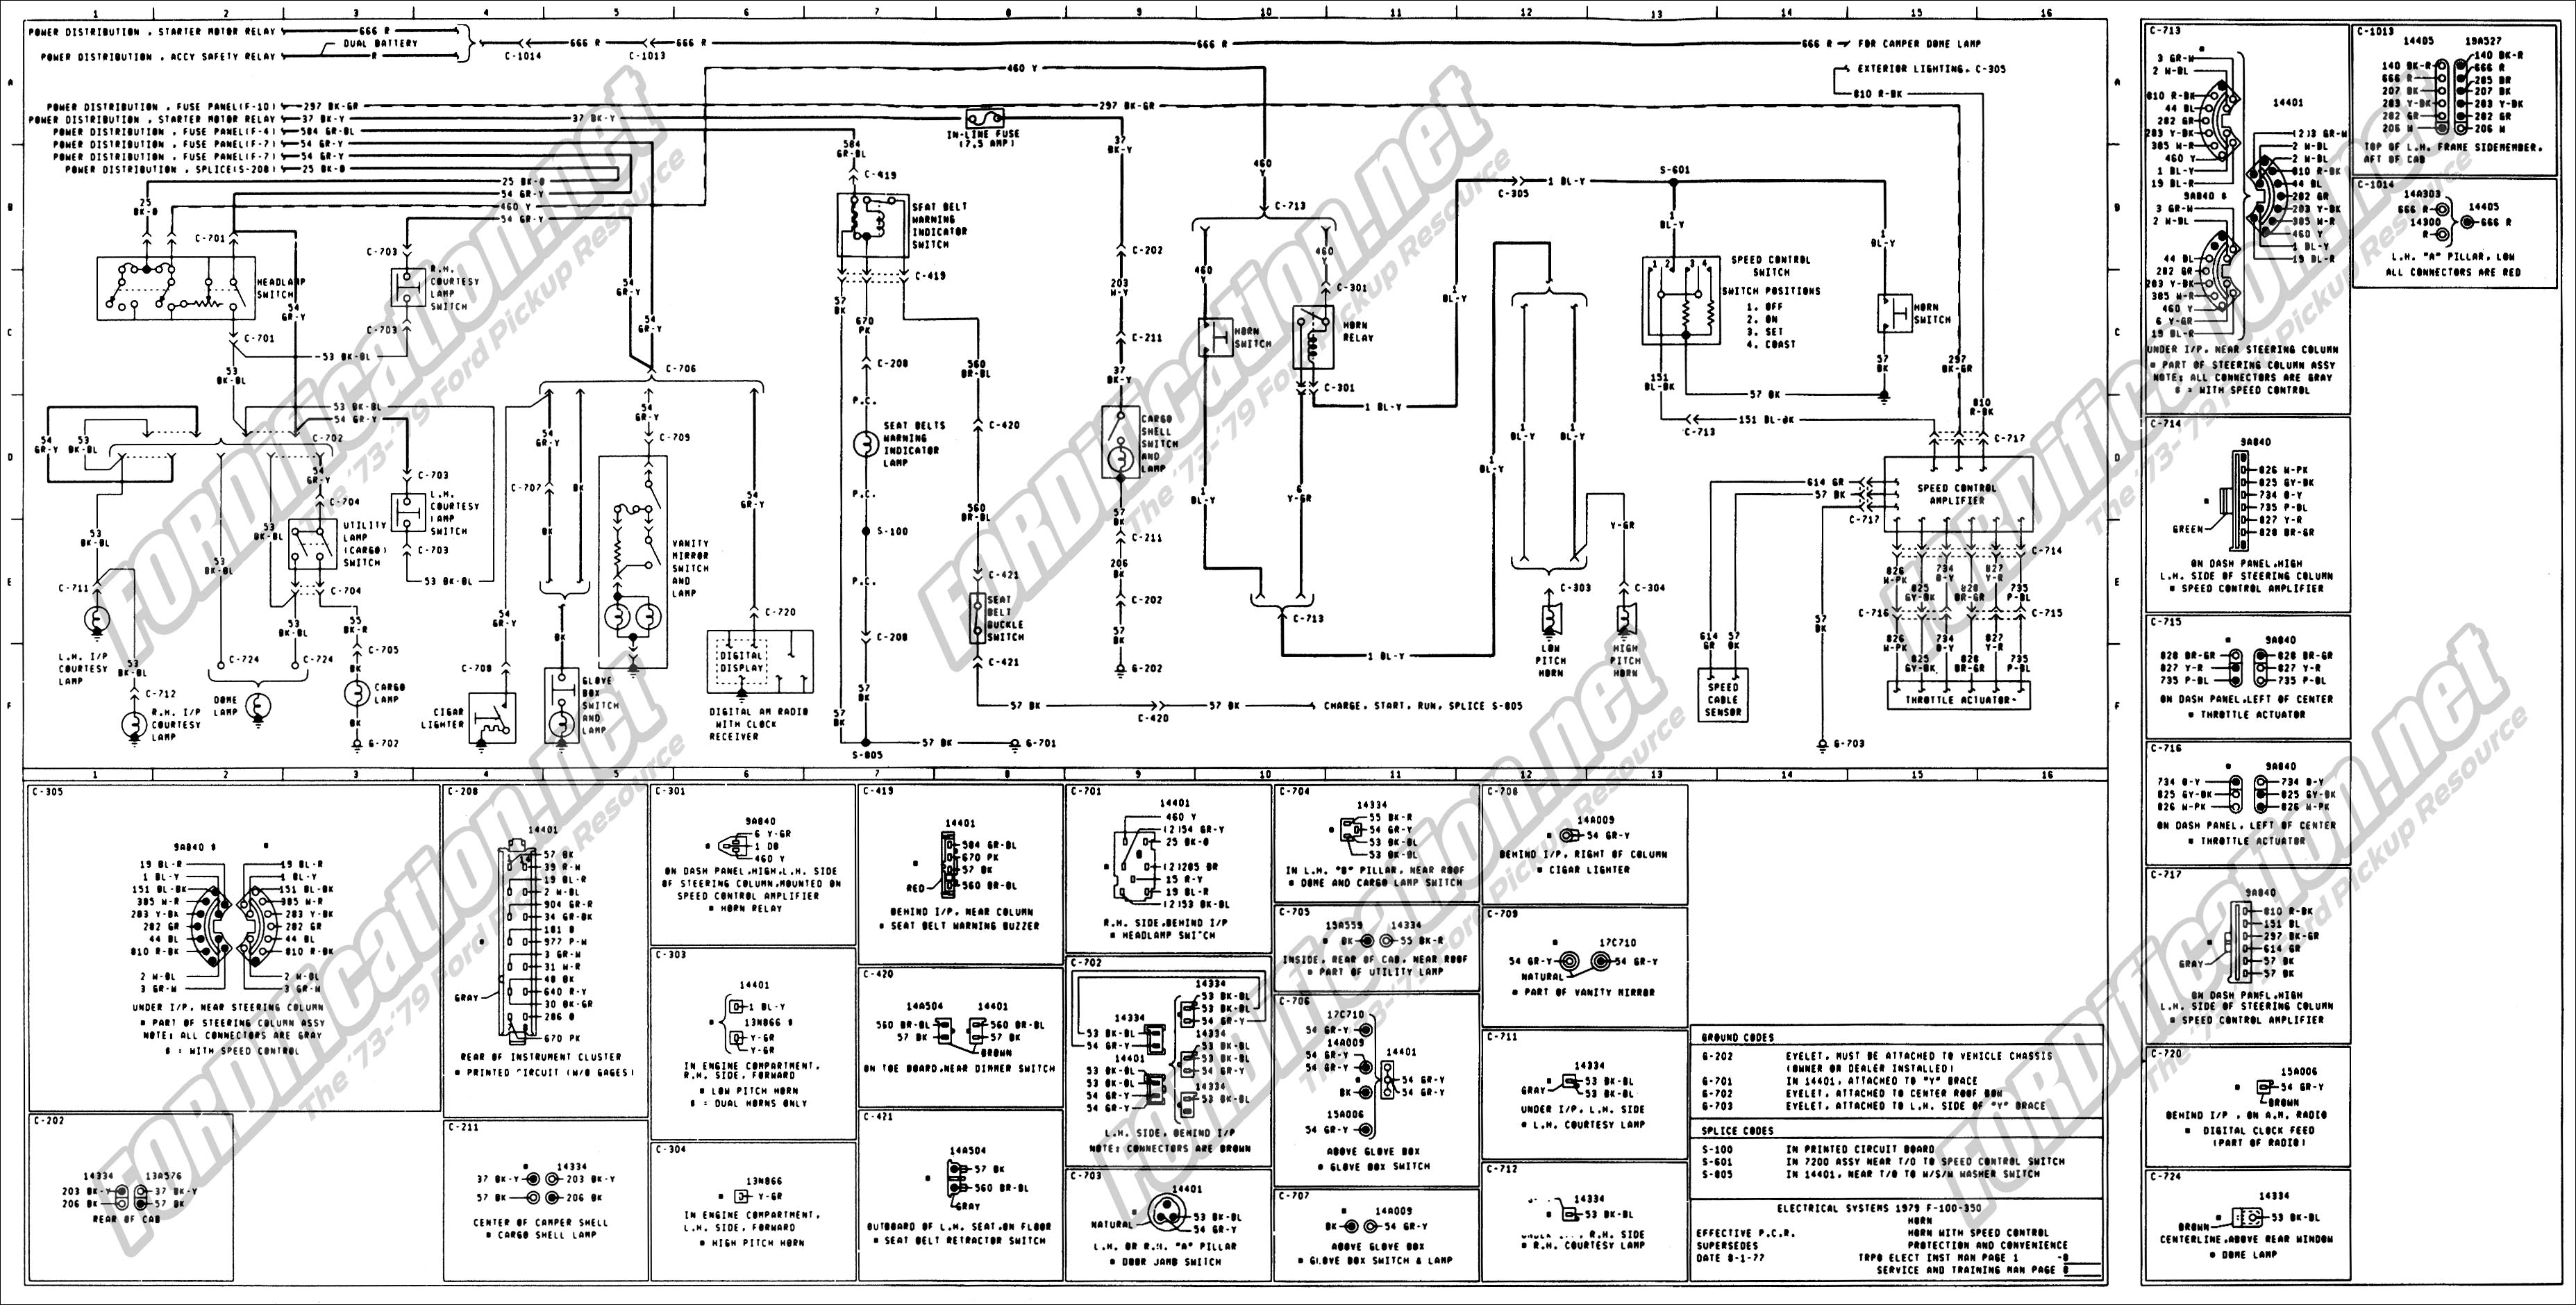 Fuse Box Schematic For 1979 Bronco Just Wiring Data 2001 F150 Fuse Box  Location For 1979 F150 Fuse Box